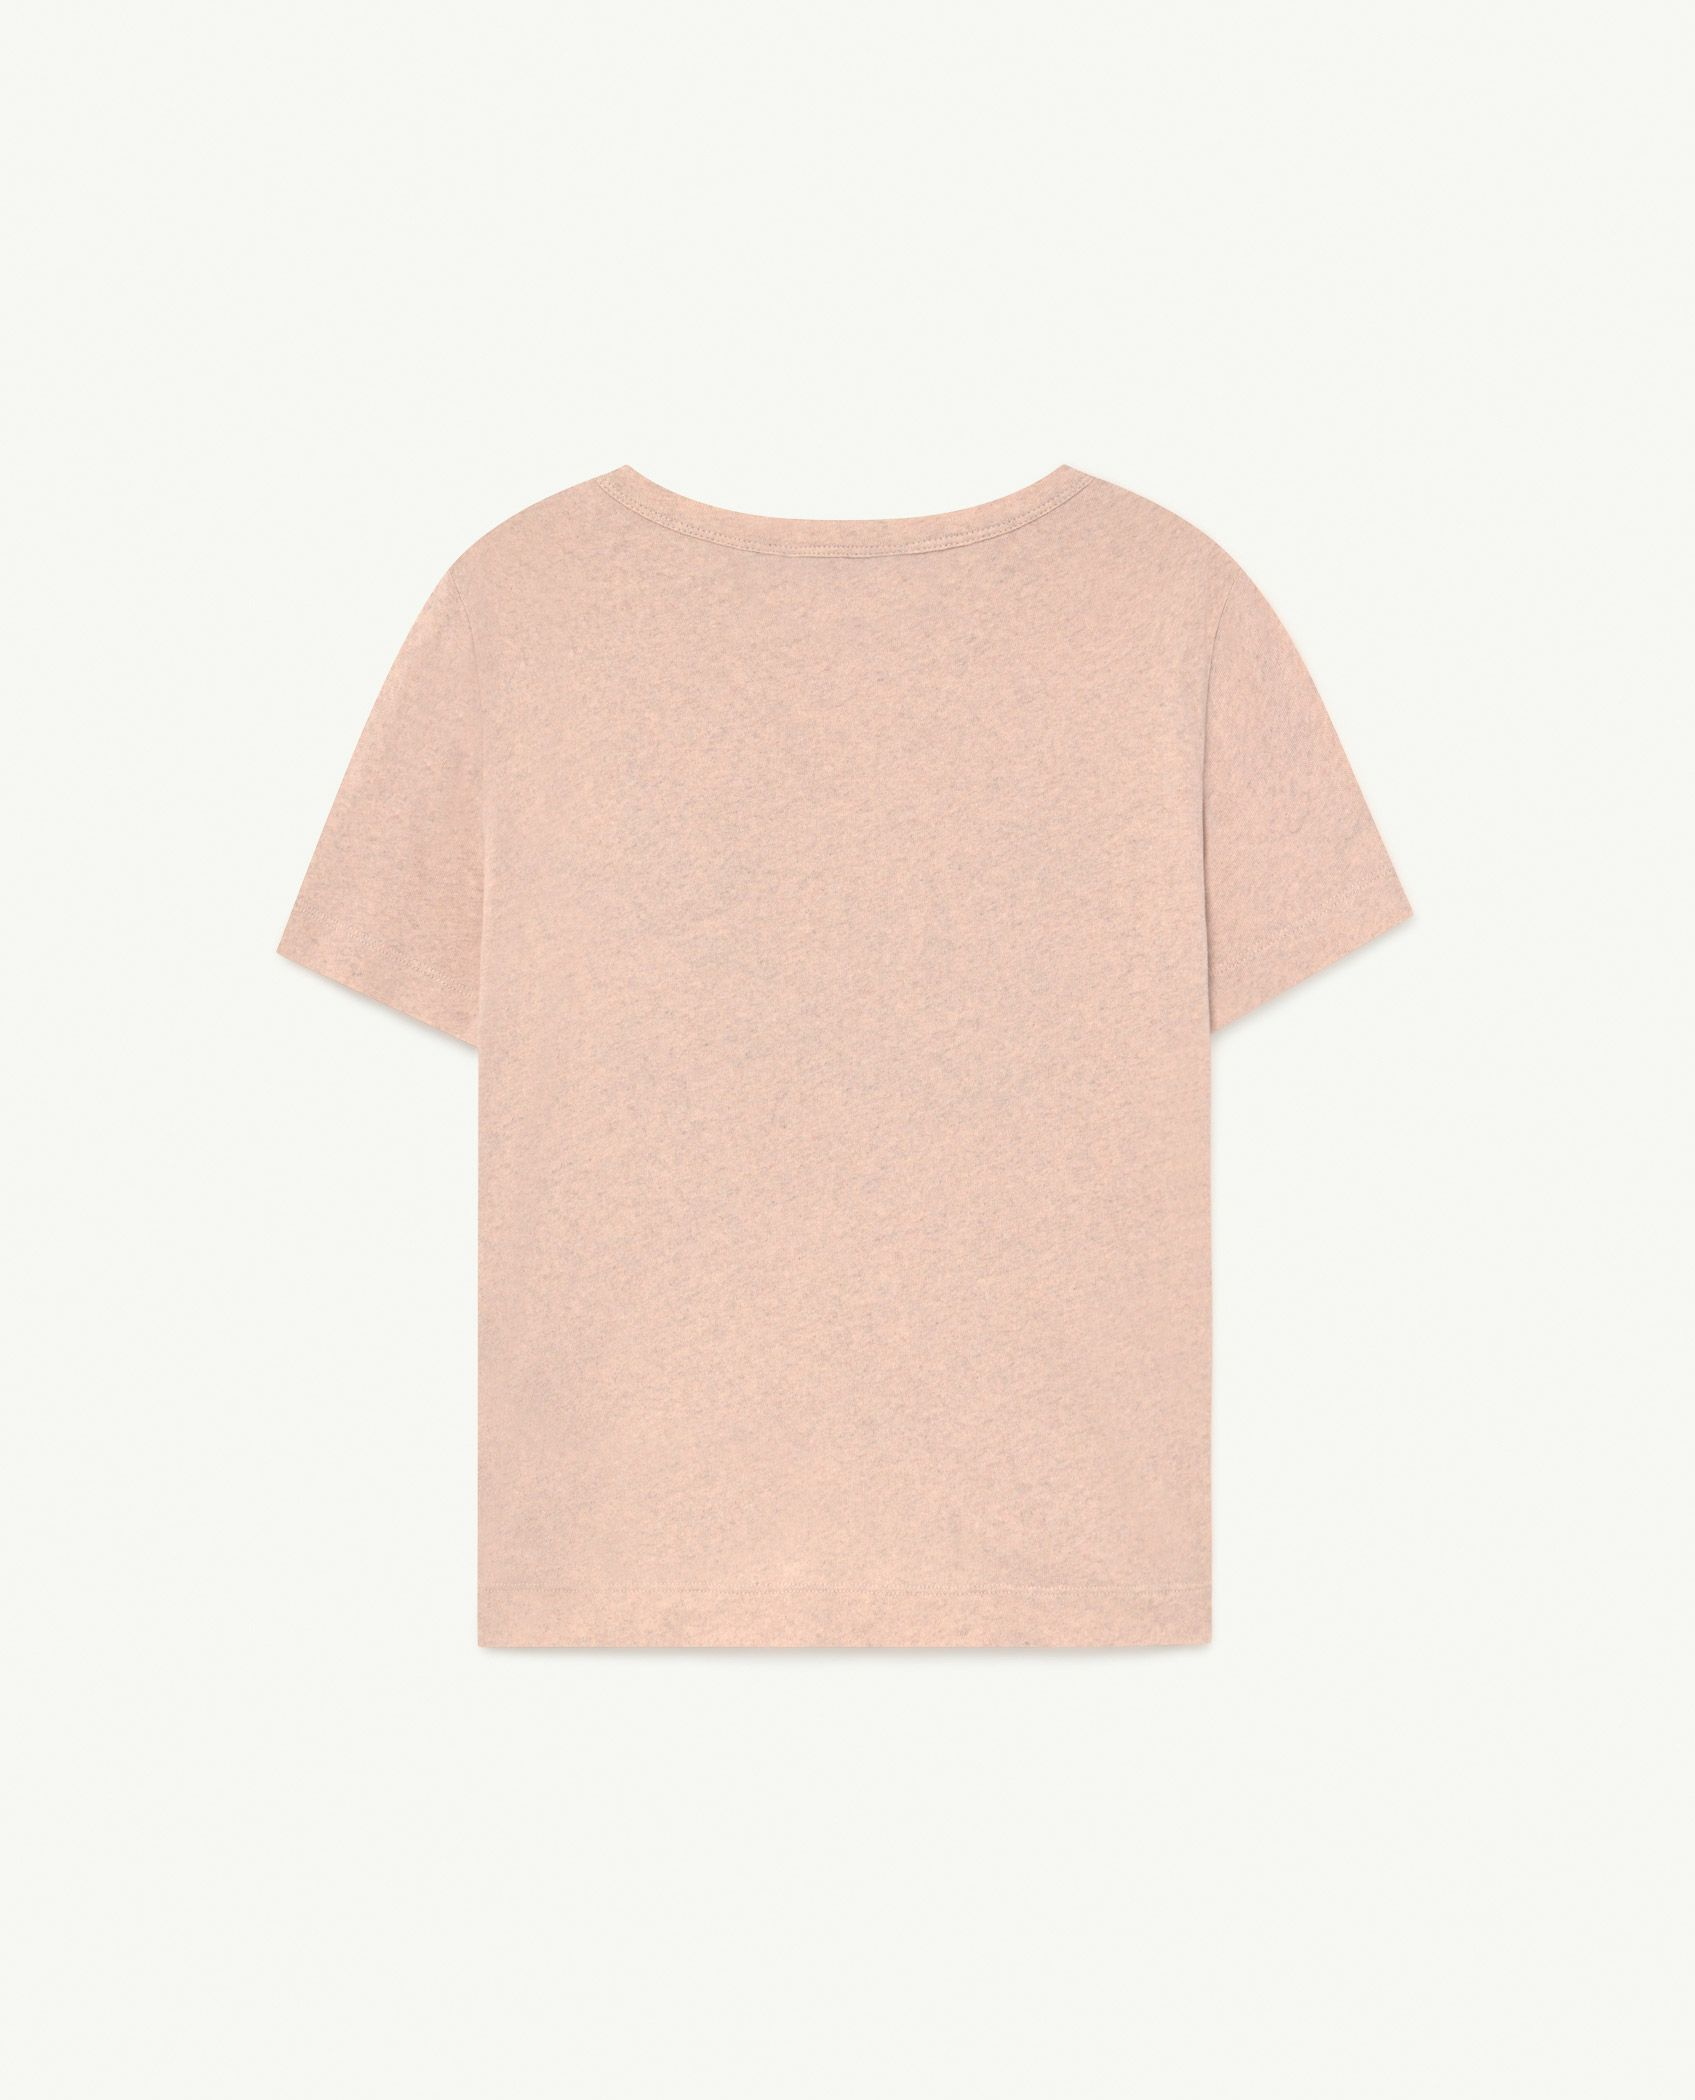 Recycled Soft Pink Le Monde Rooster T-Shirt img-2